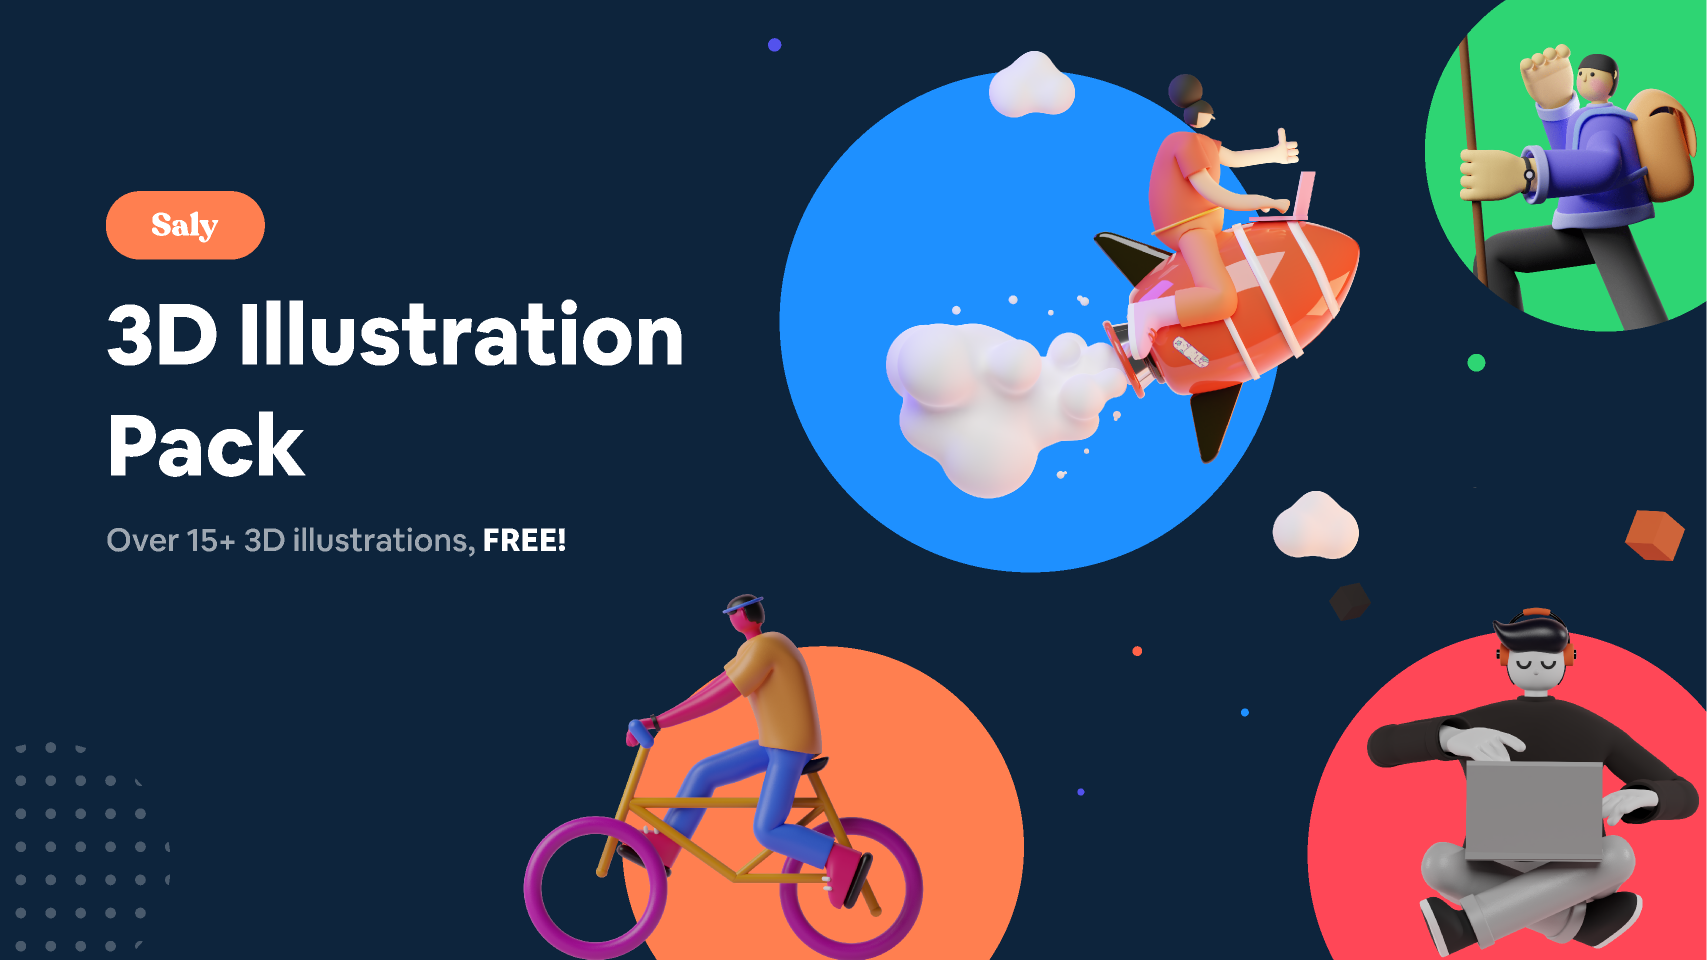 Figma 3D Illustration Pack (SALY)